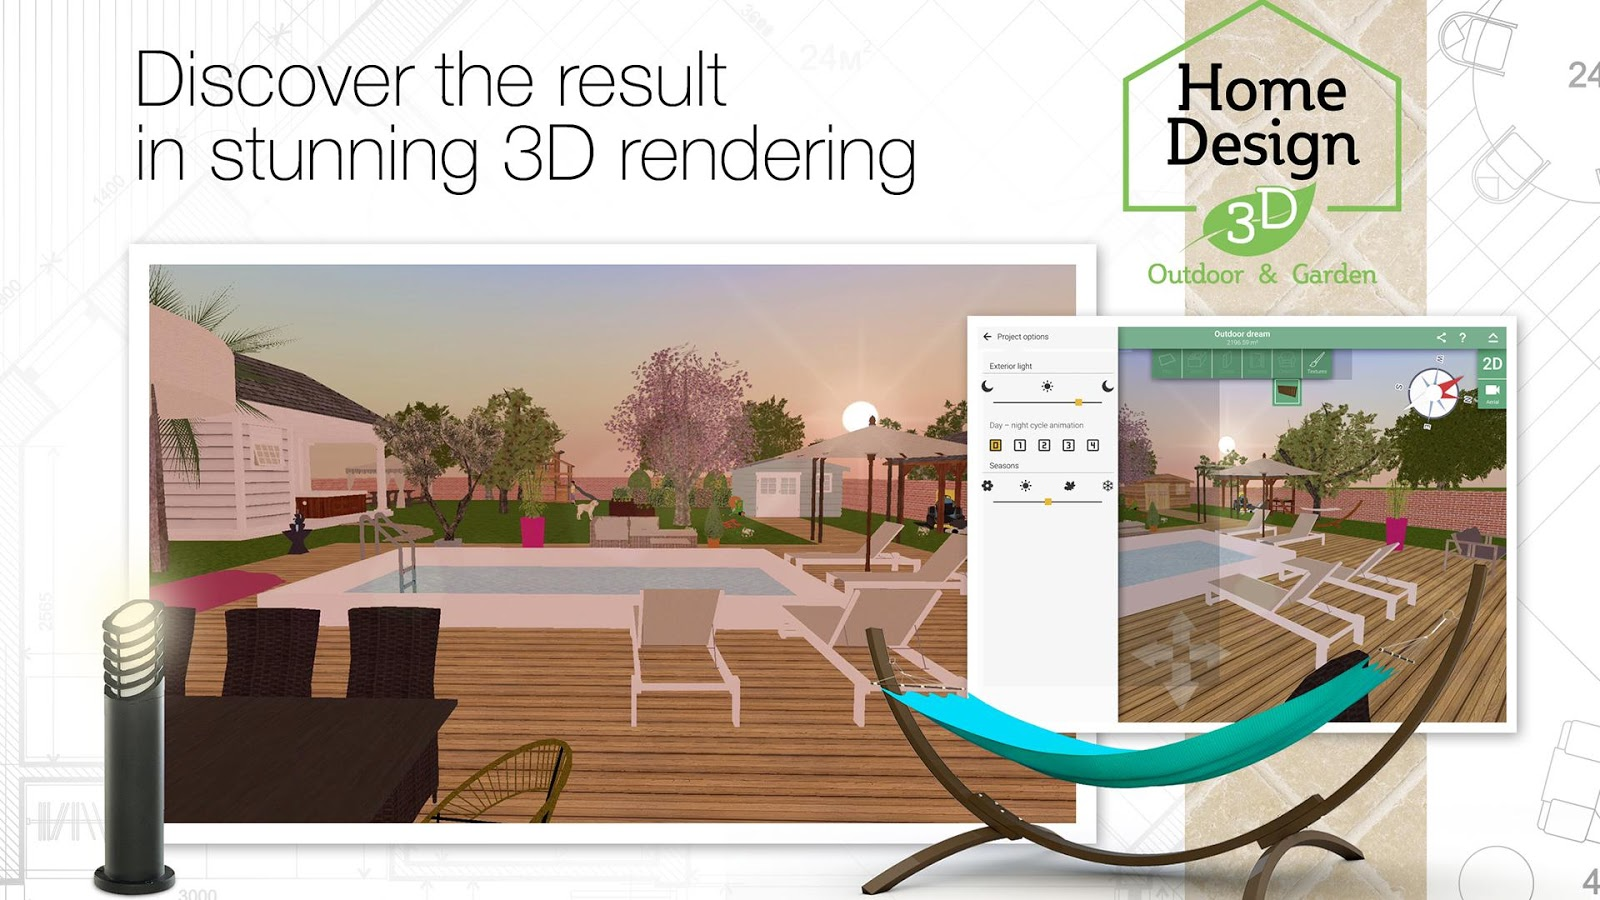 Home design 3d outdoor garden android apps on google play for Design your own home landscape